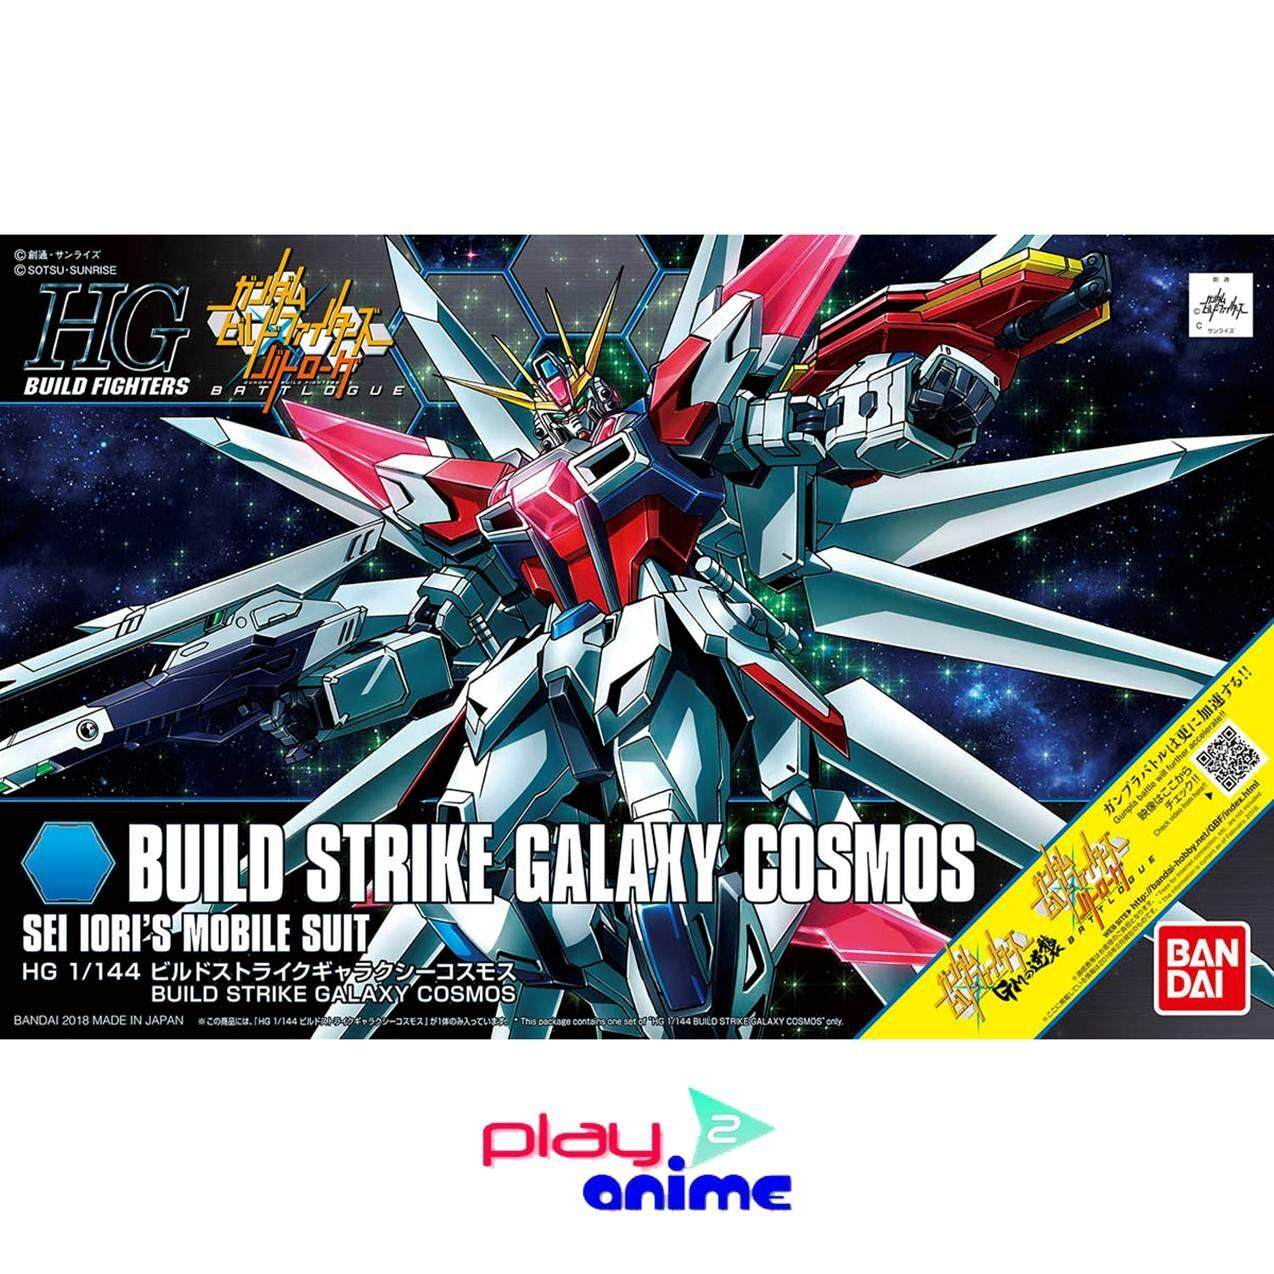 ขาย ซื้อ Bandai 1 144 High Grade Build Strike Galaxy Cosmos ไทย